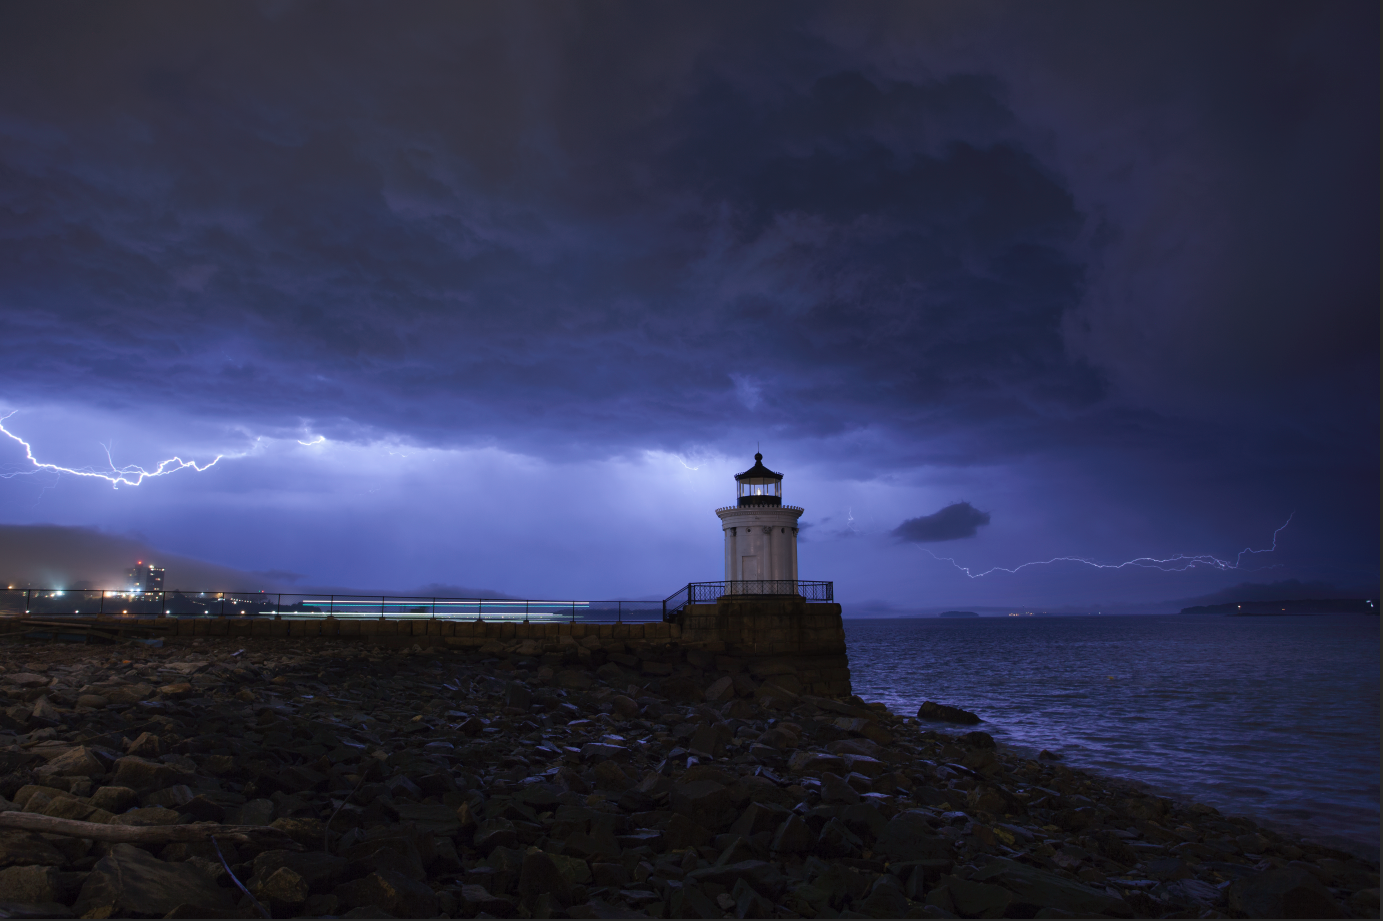 Now that lighthouse looks a little more ominous